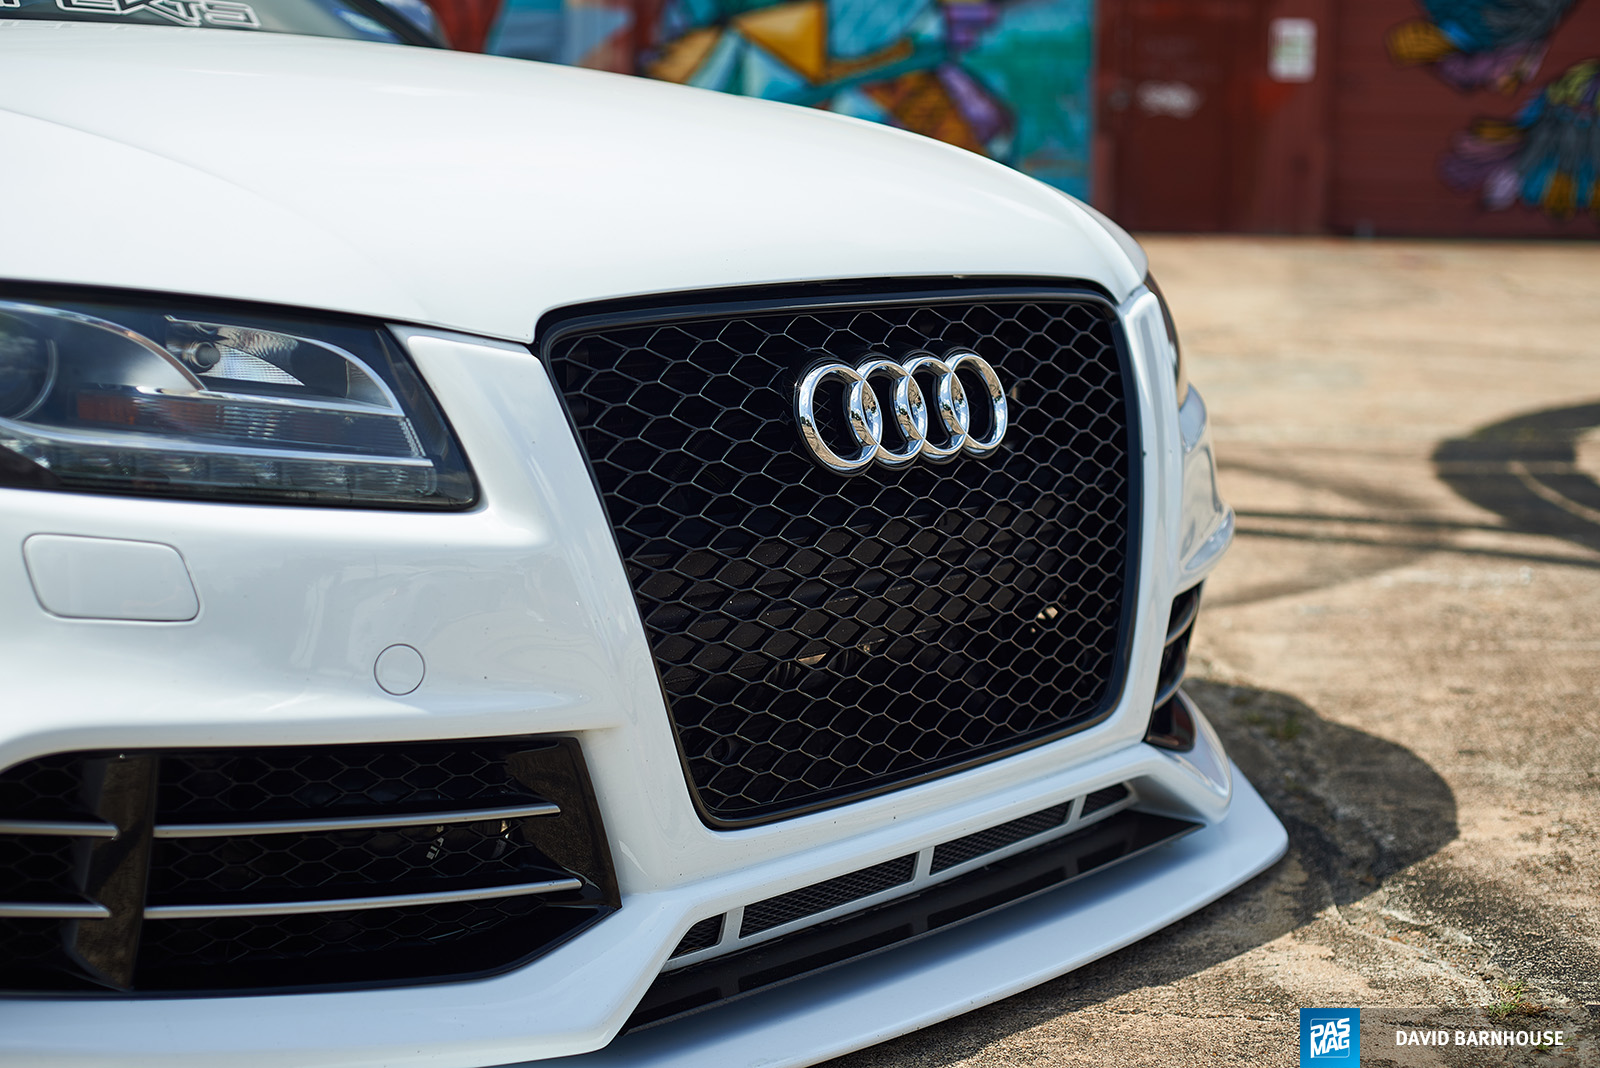 07 Thomas Ho 2009 Audi S5 pasmag builds to follow